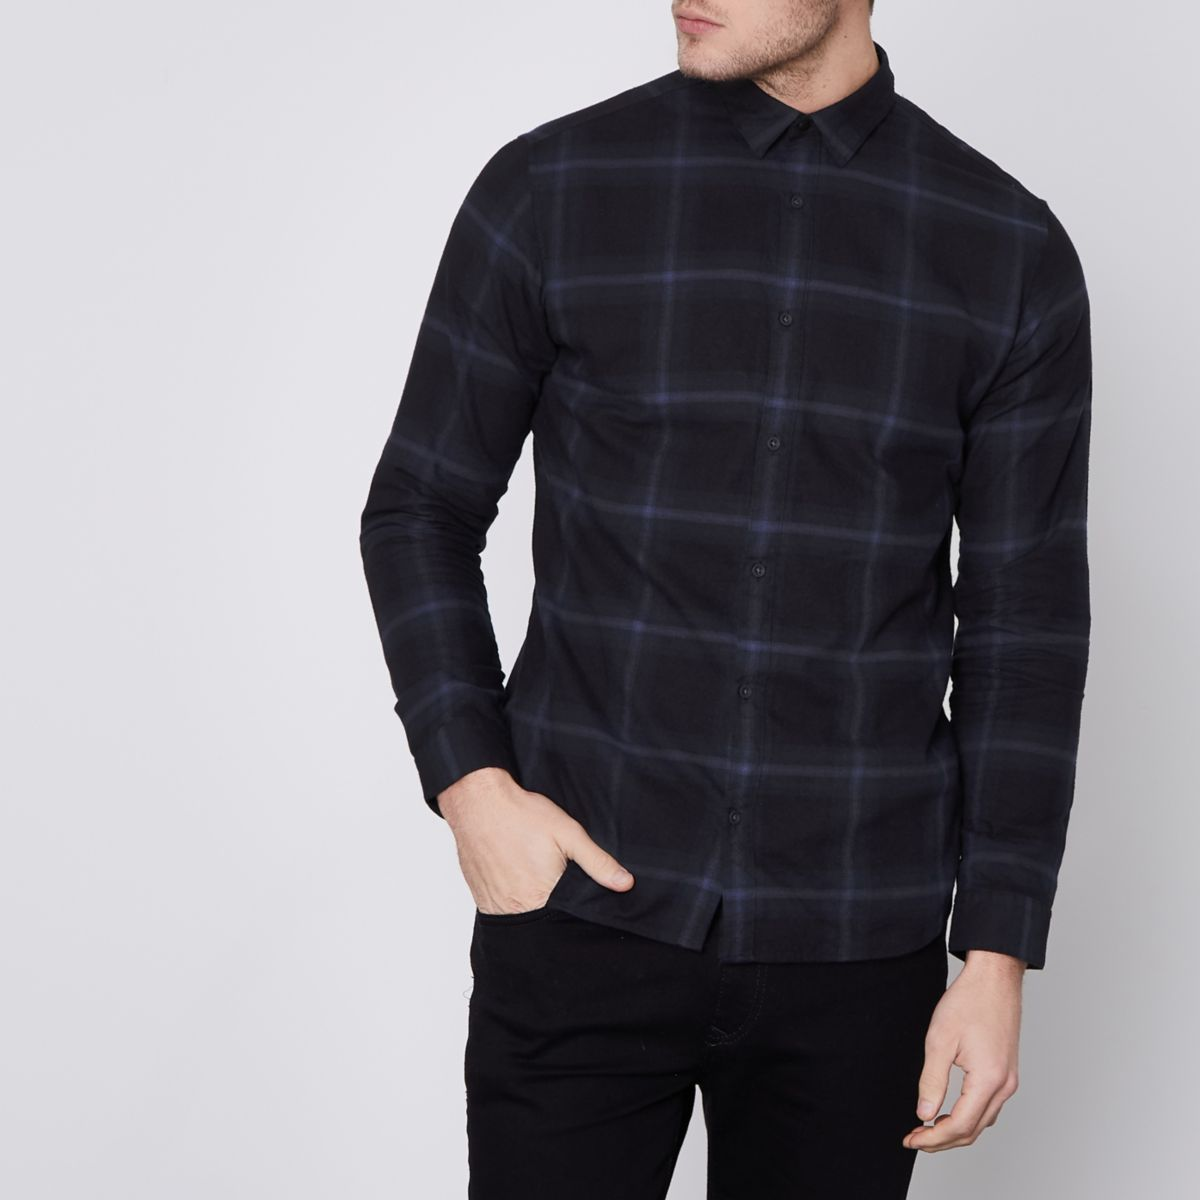 Jack & Jones Premium navy check slim shirt